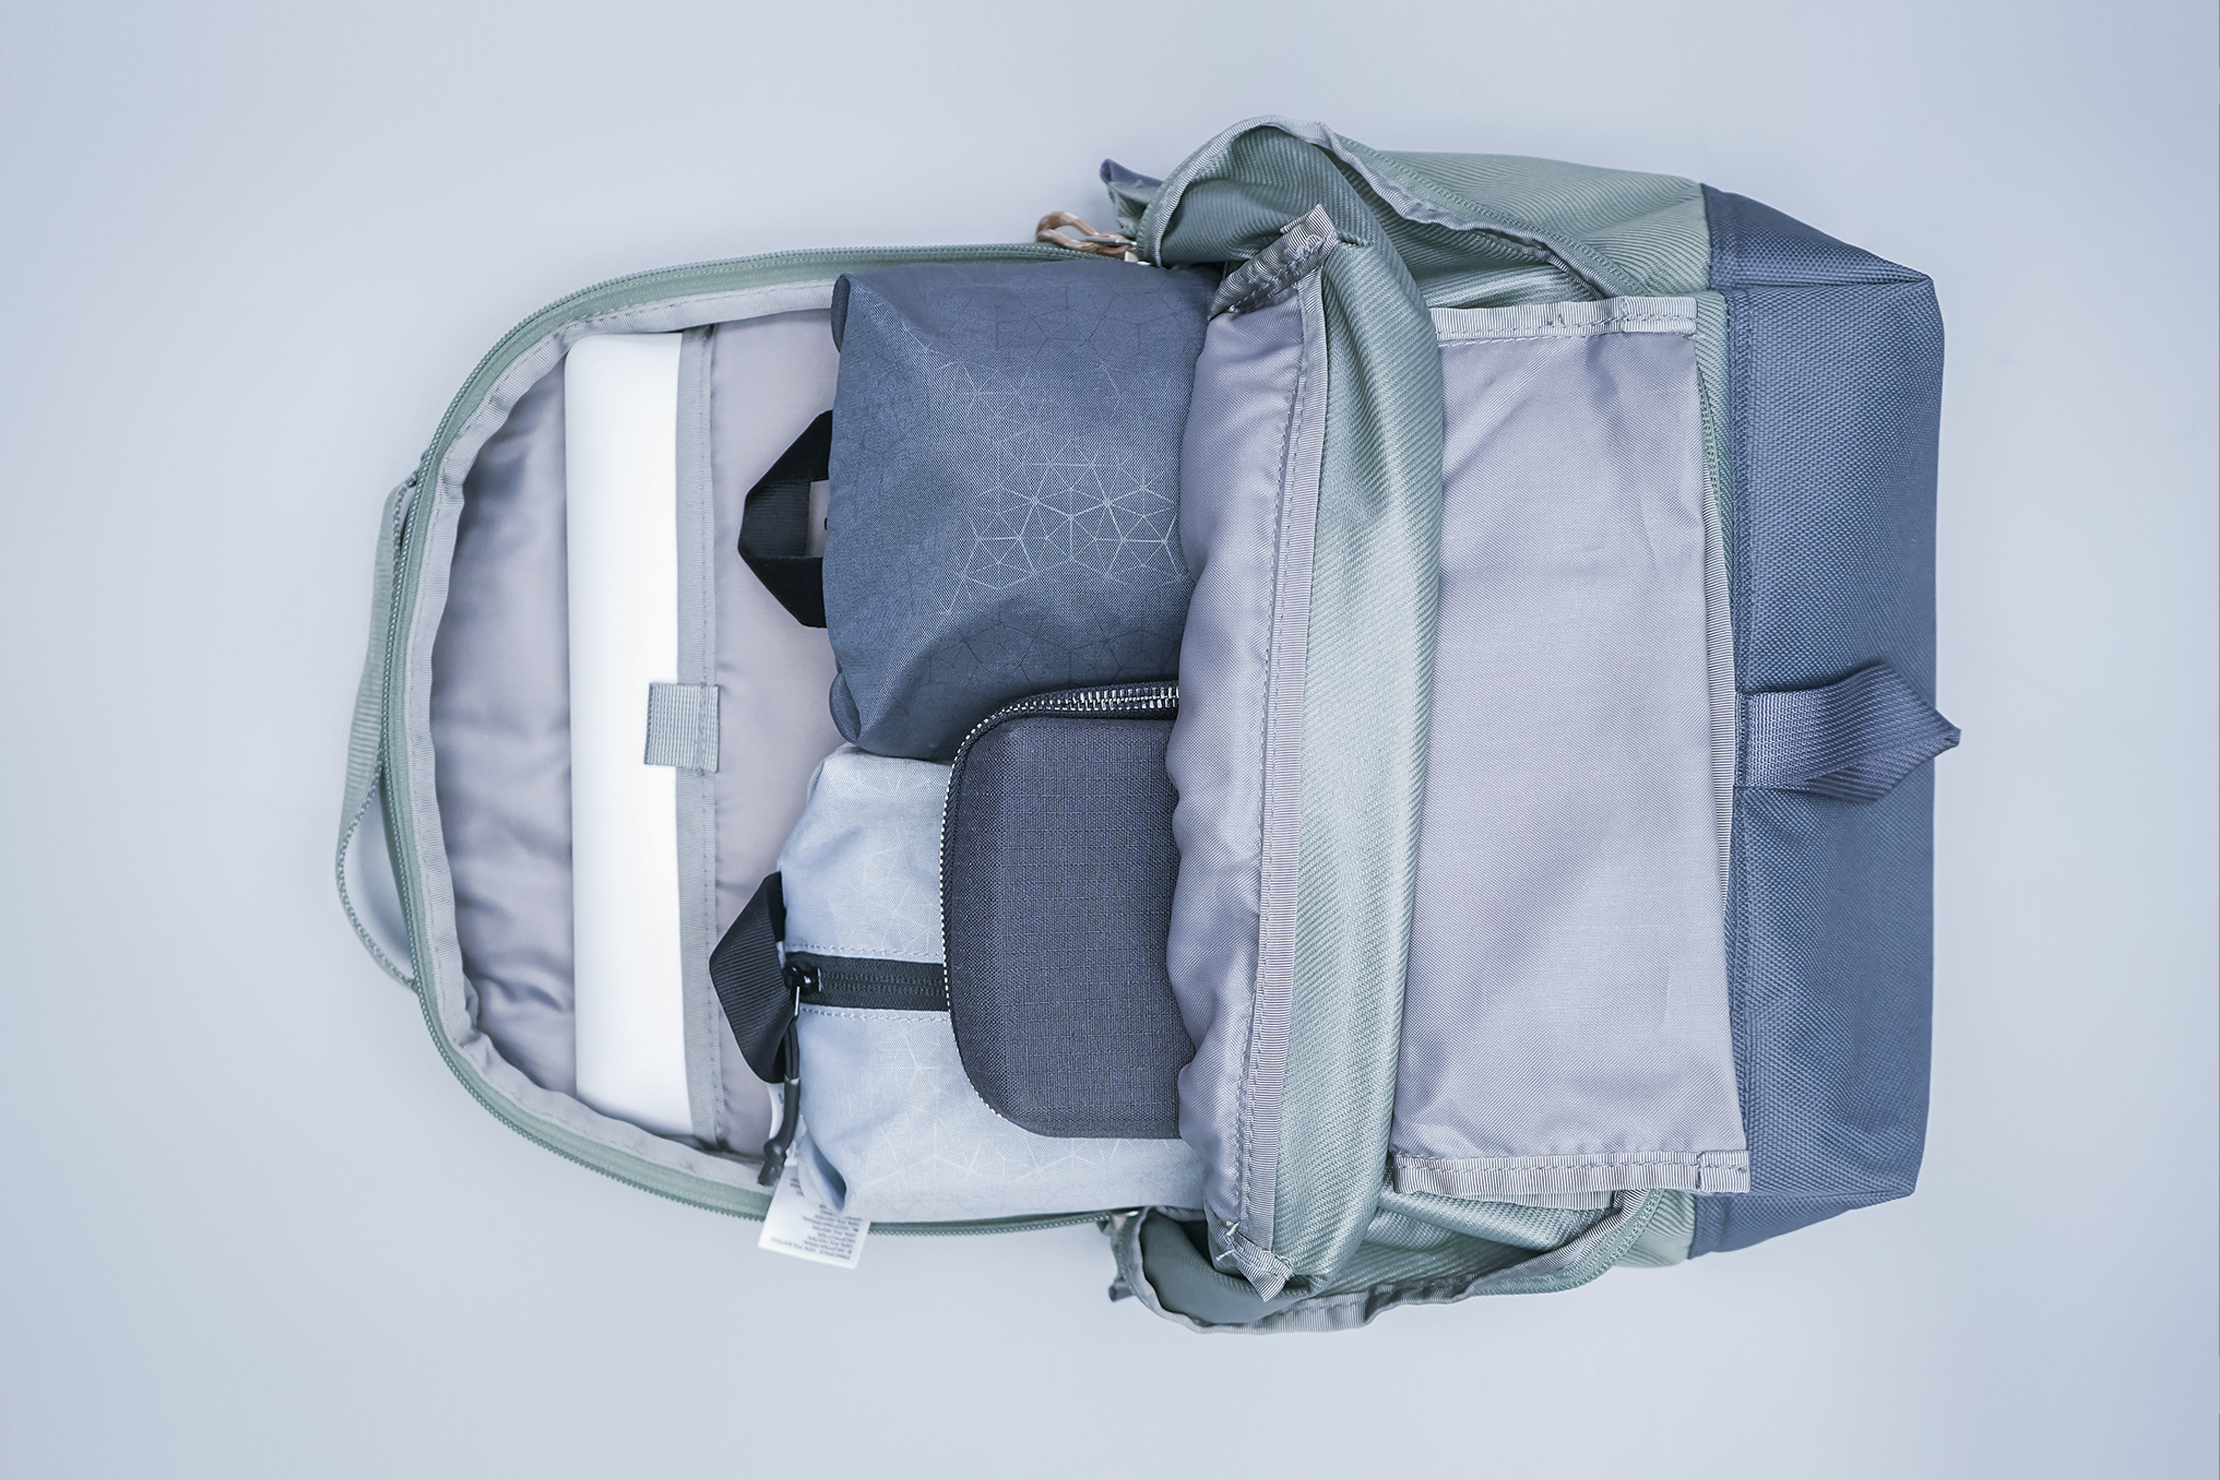 The North Face Daypack main compartment packed